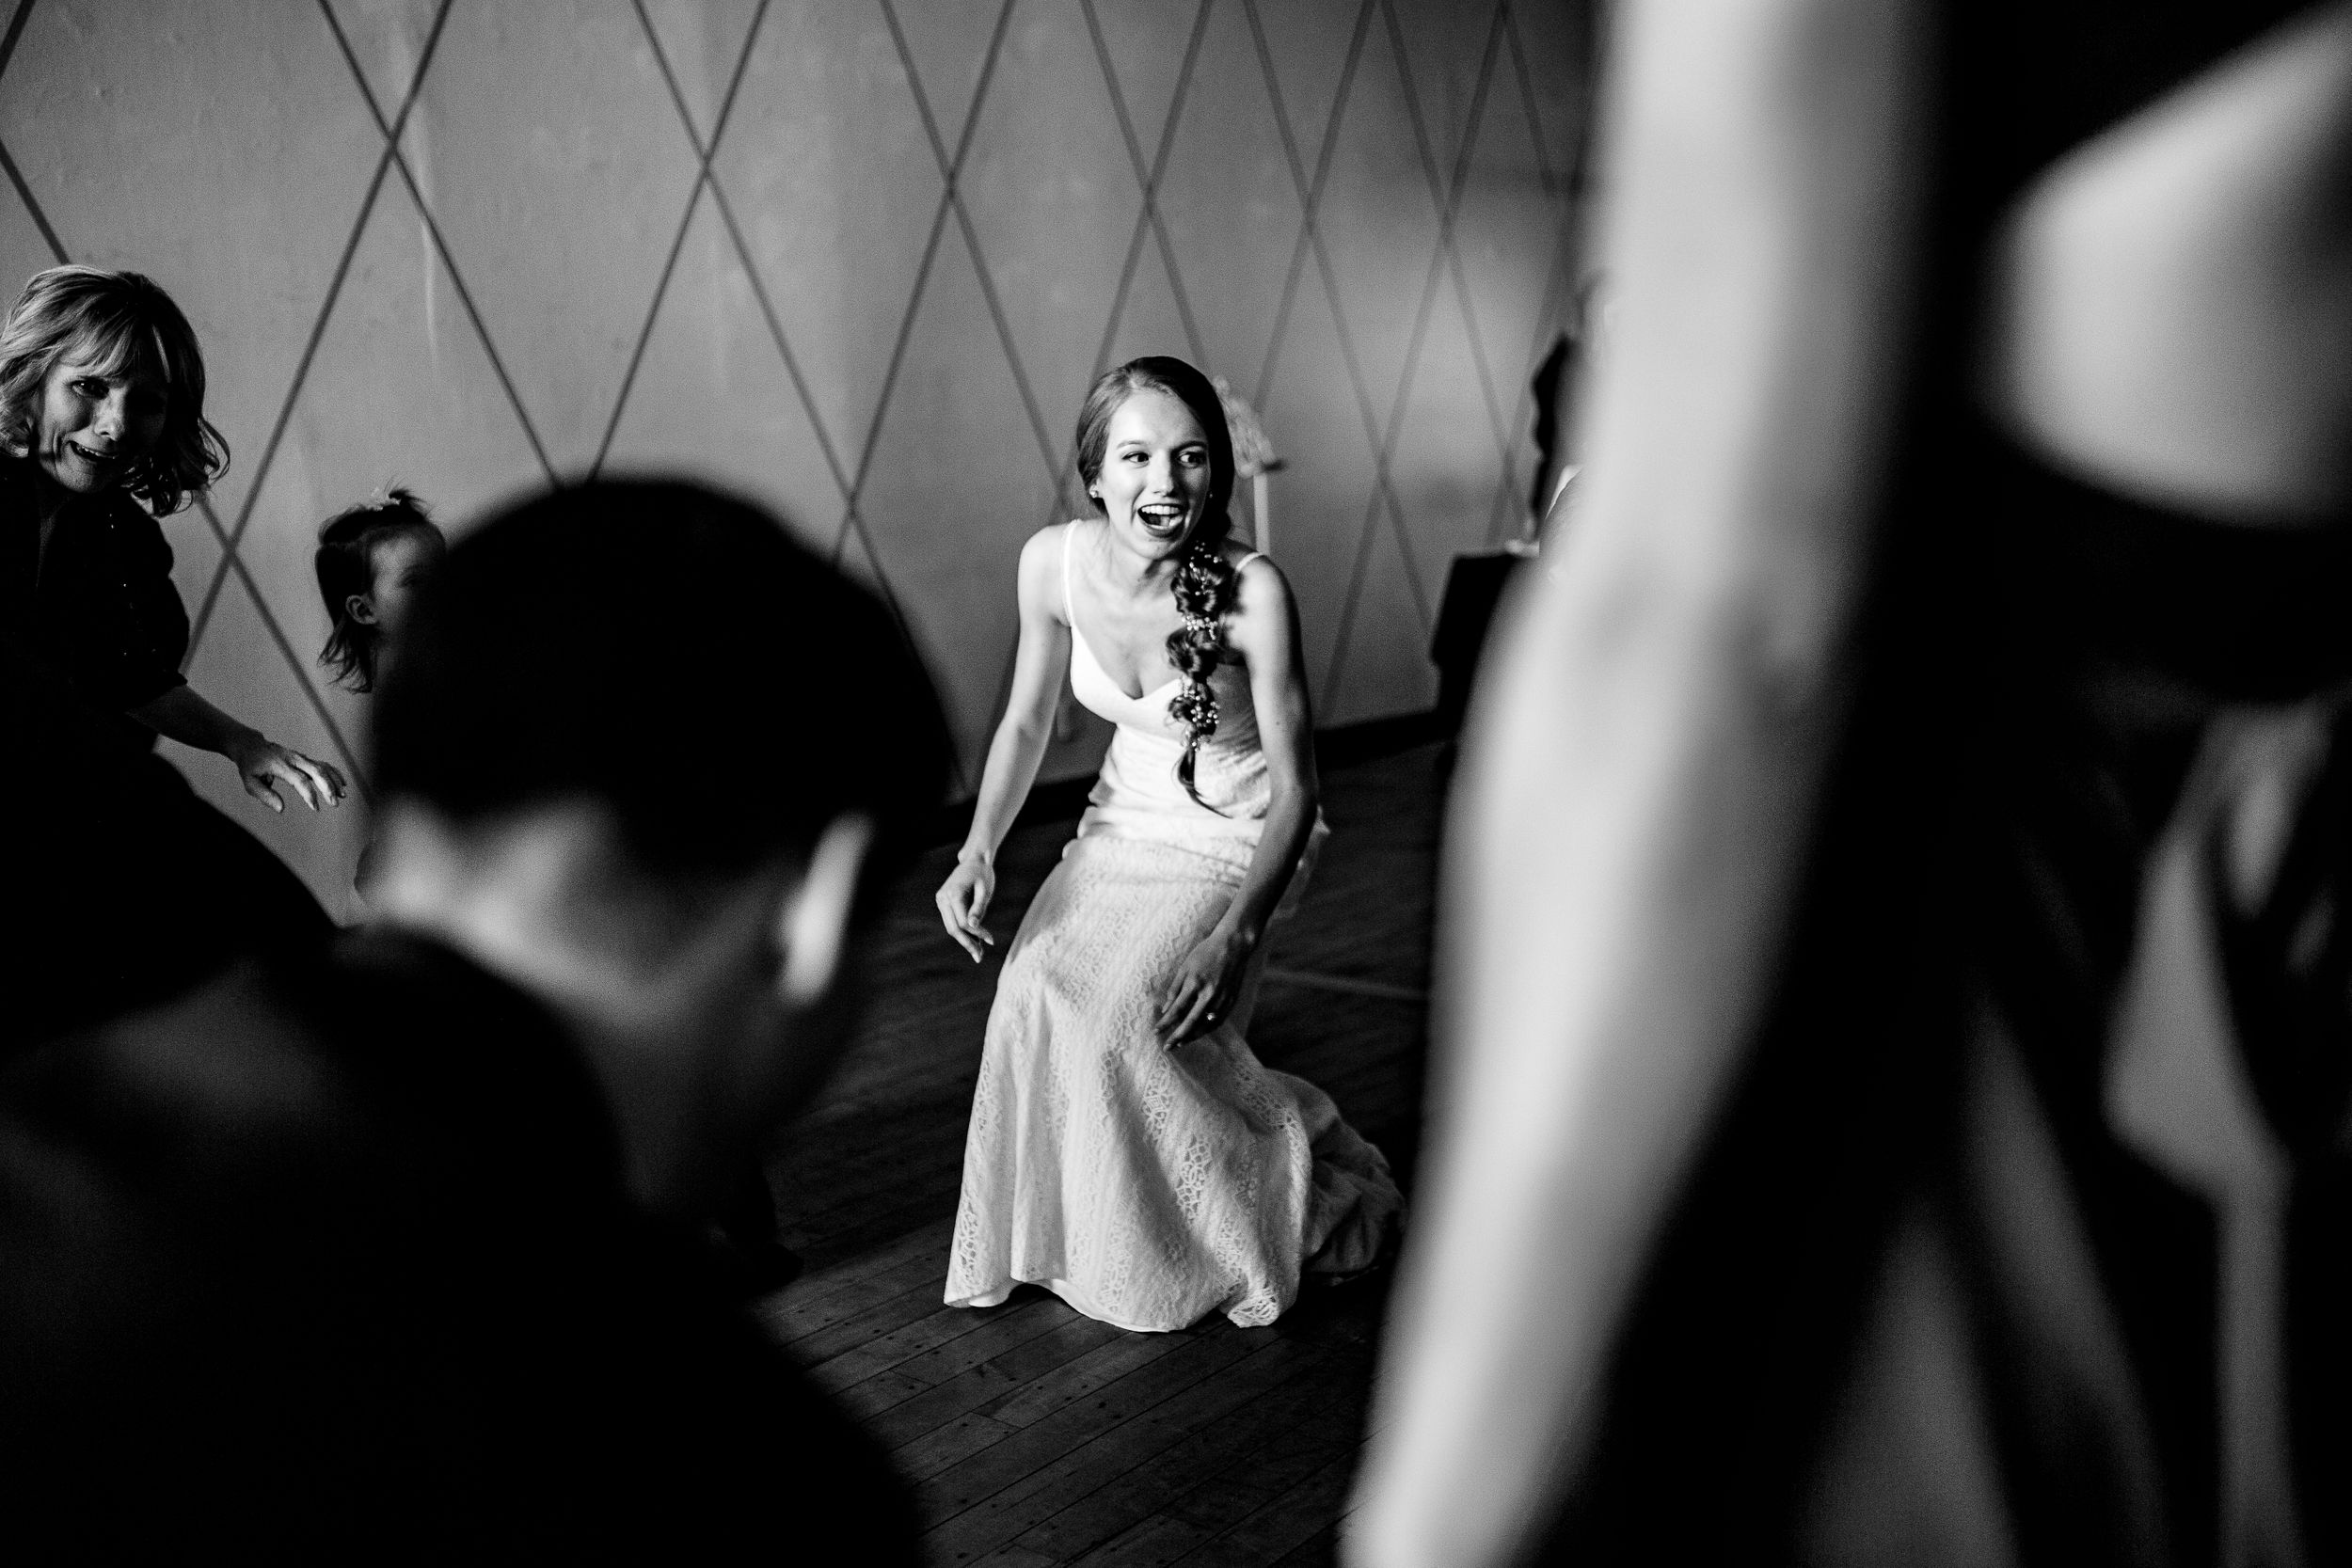 A bride dances with her guests at the Vintage Ballroom in Omaha Nebraska